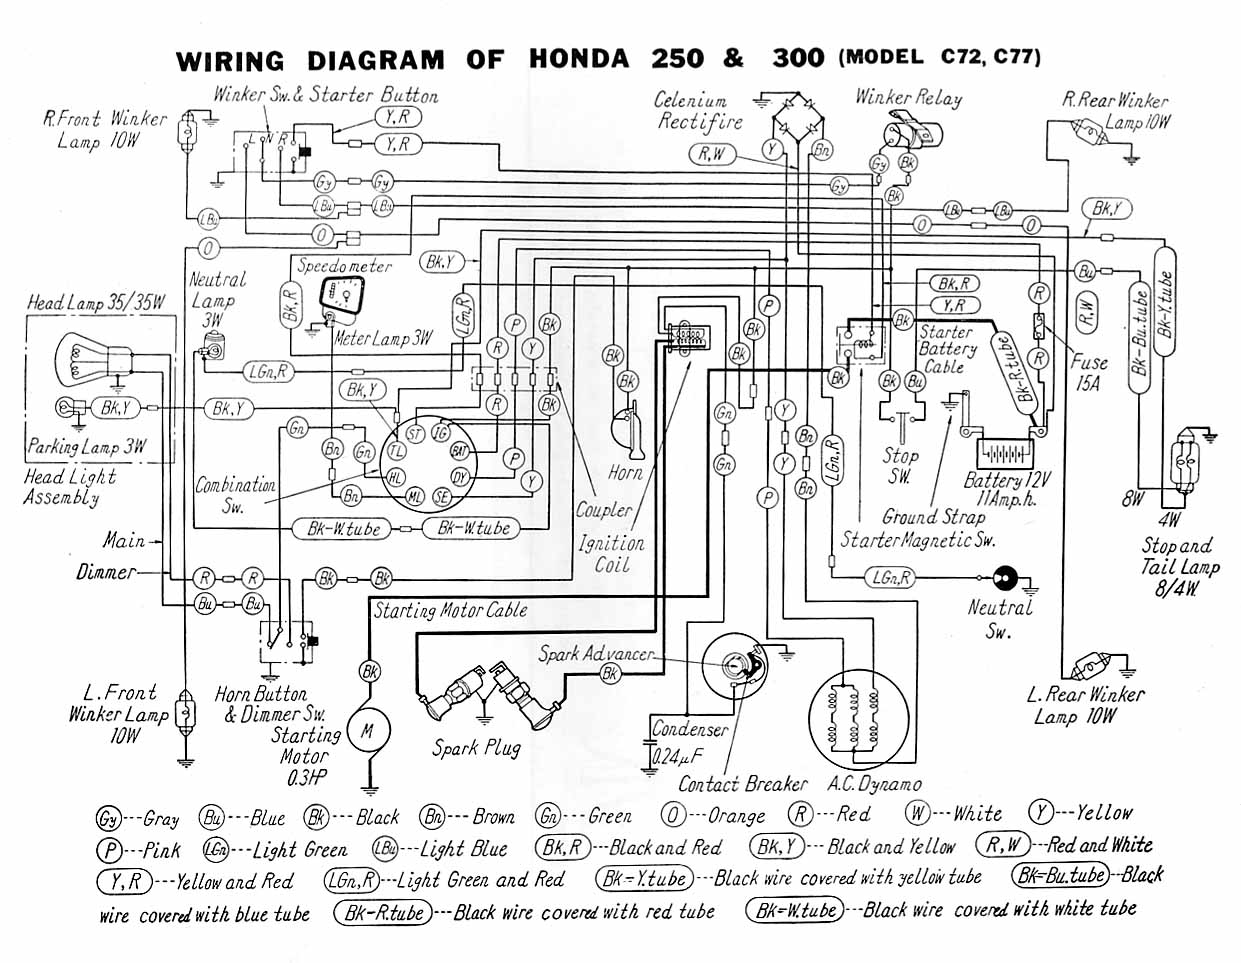 Suzuki Gt550 Wiring Diagram And Schematics Rv90 Diagrams Rh Oregonmotorcycleparts Com 1974 Motorcycles